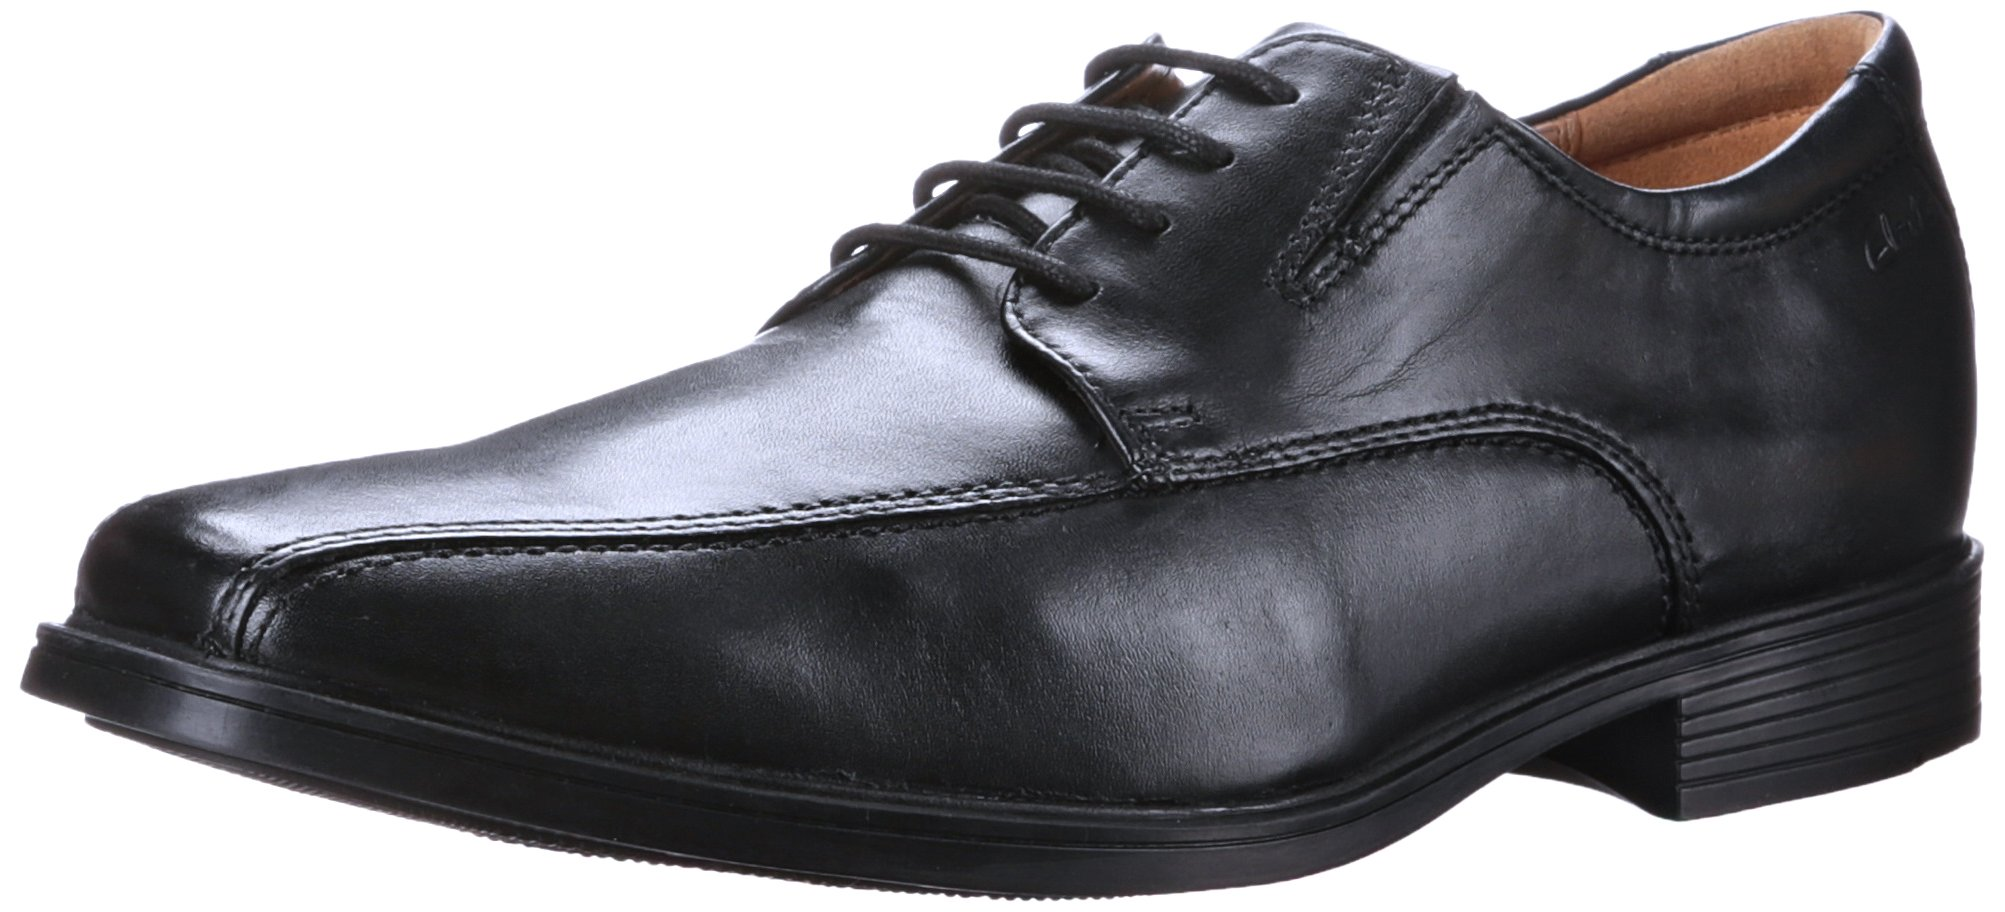 CLARKS Men's Tilden Walk Oxford, Black Leather, 10 M US